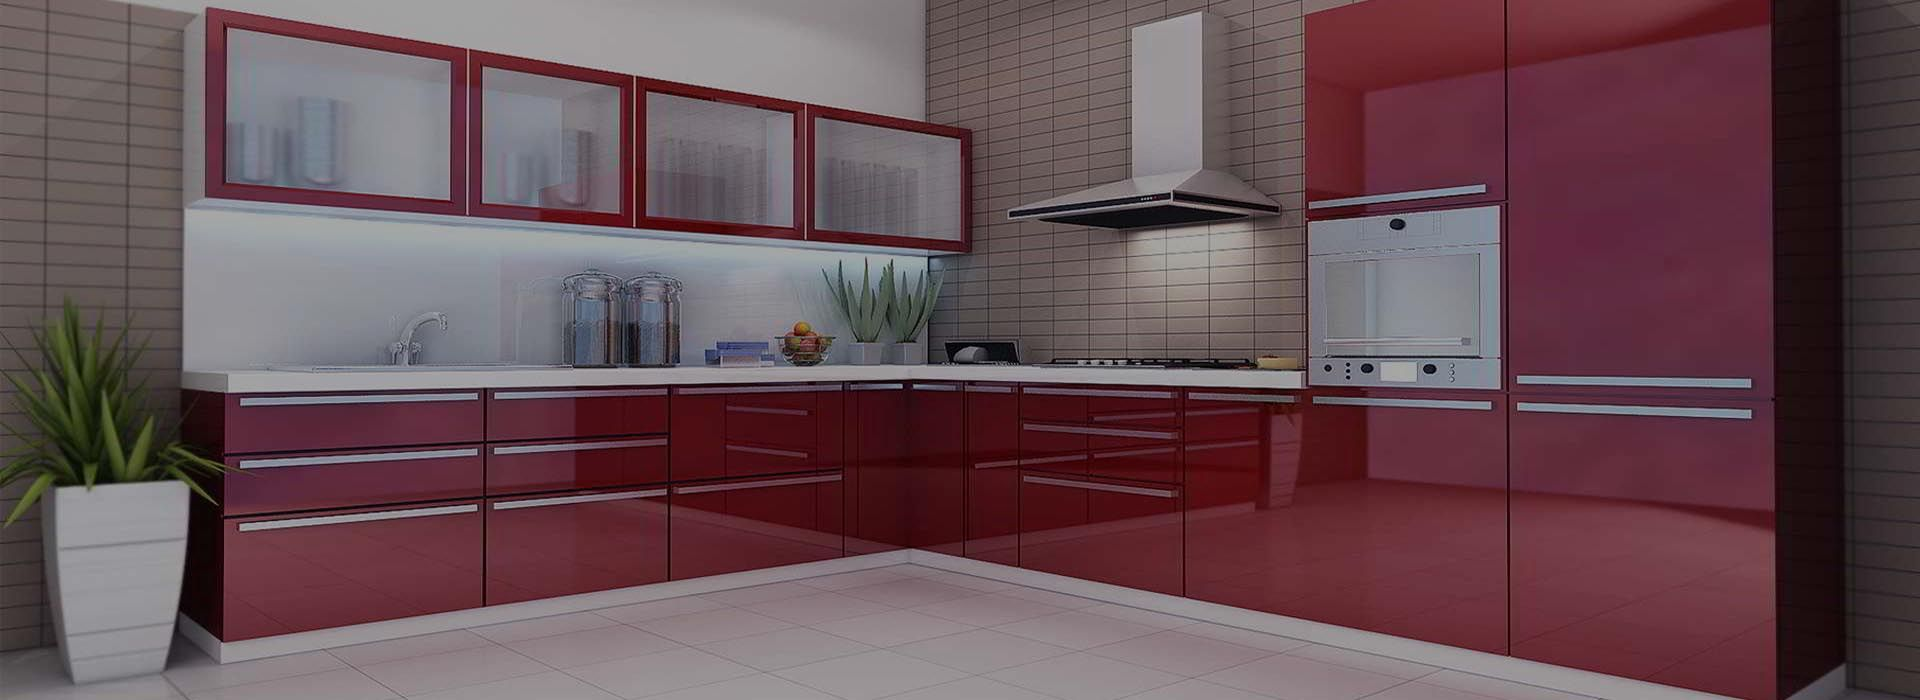 We Are The Best Modular Kitchen Interior Designers In Bangalore Providers  Along With Top 10 Modular Kitchen Interior Designers In Bangalore. Part 74